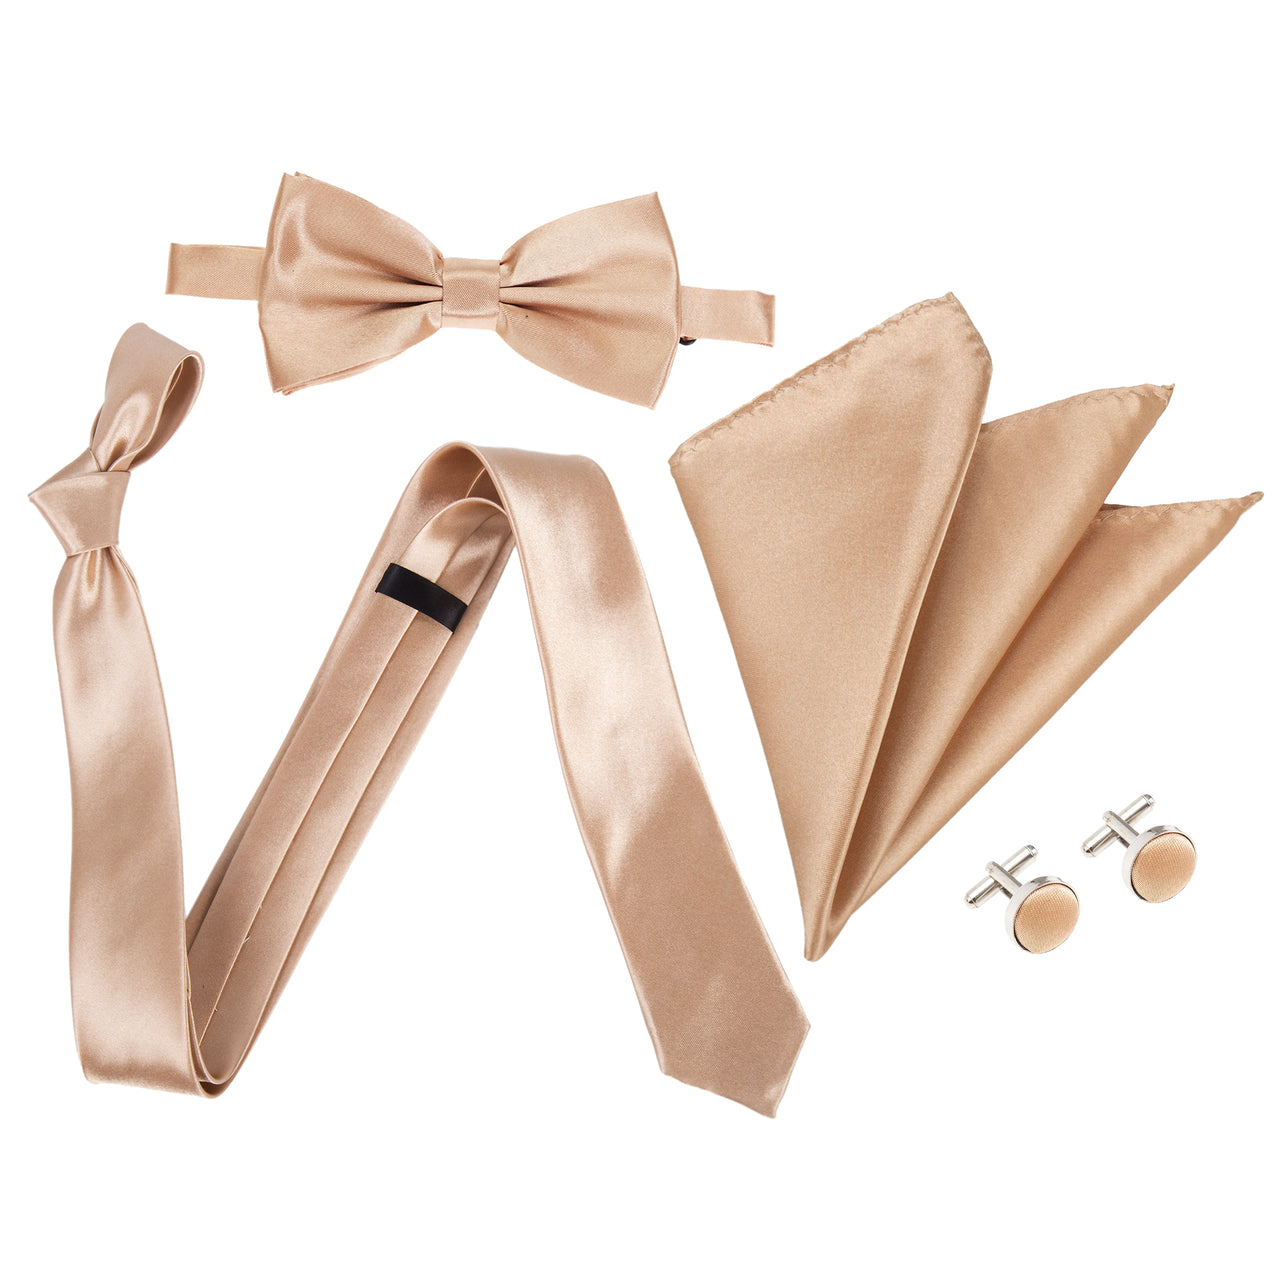 "4pc Tie Set: Slim 2"" Tie, Bow Tie, Handkerchief & Cufflinks - Copper"